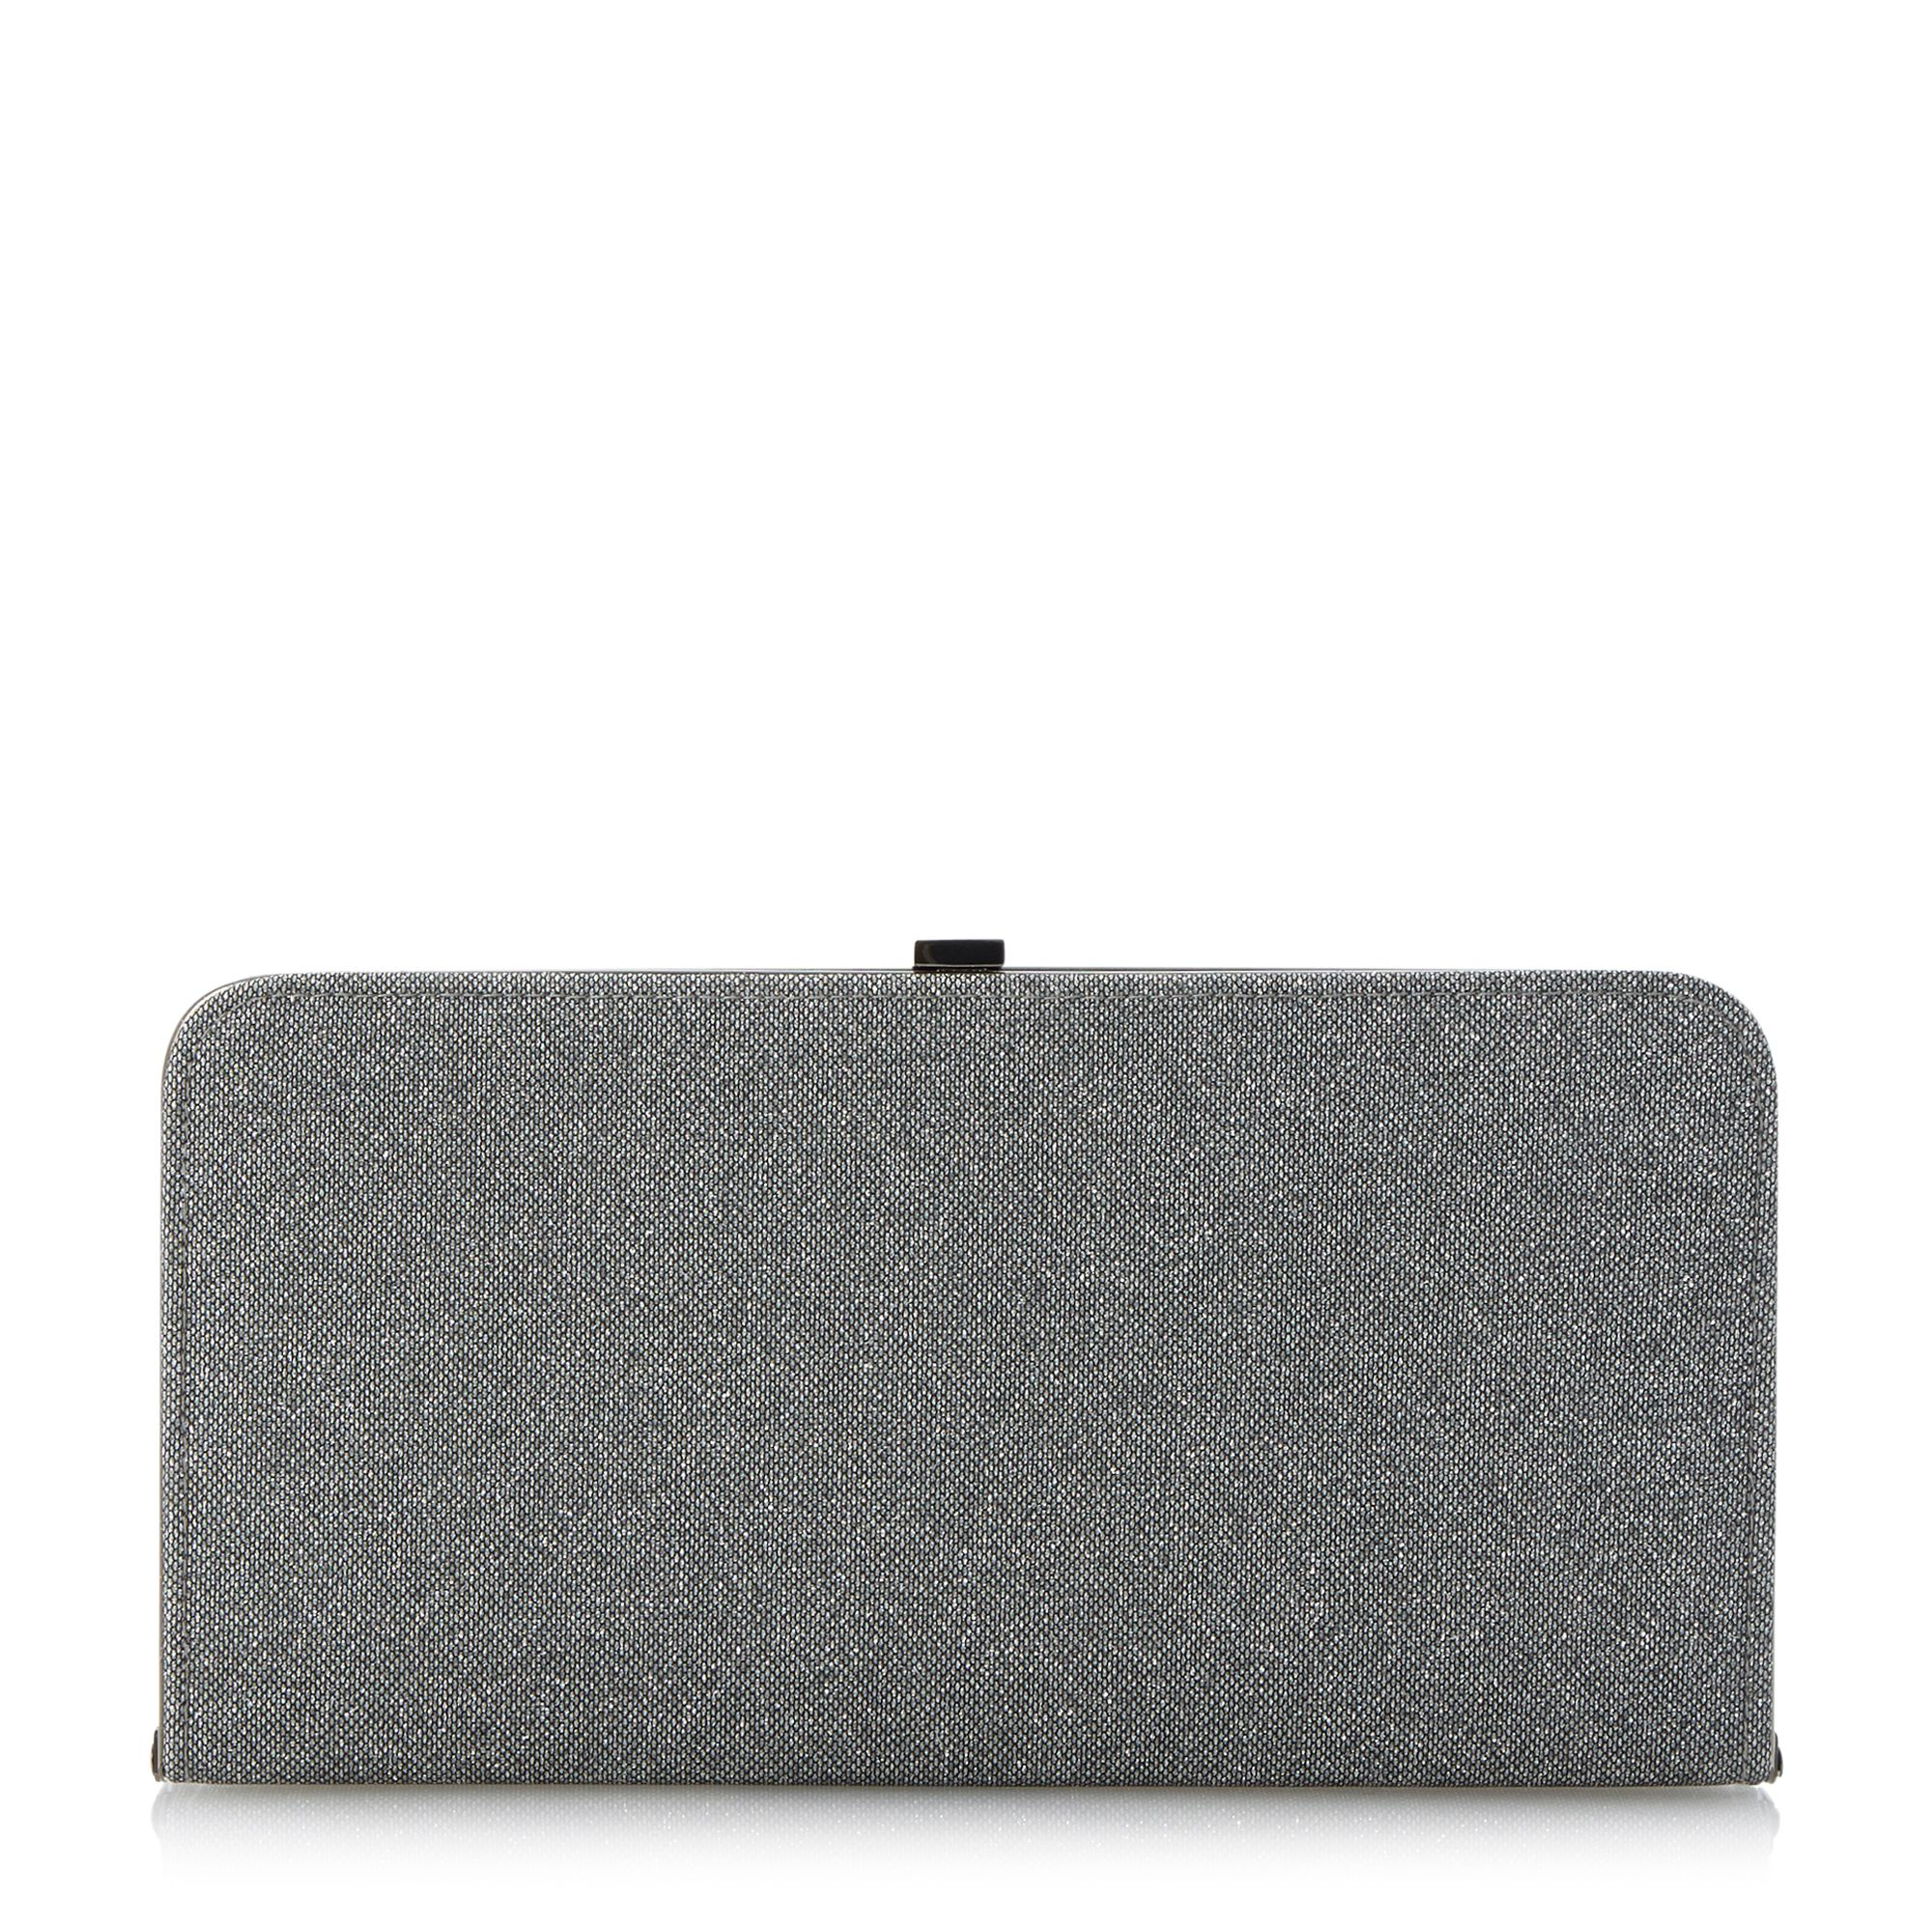 Bexy lurex clutch bag